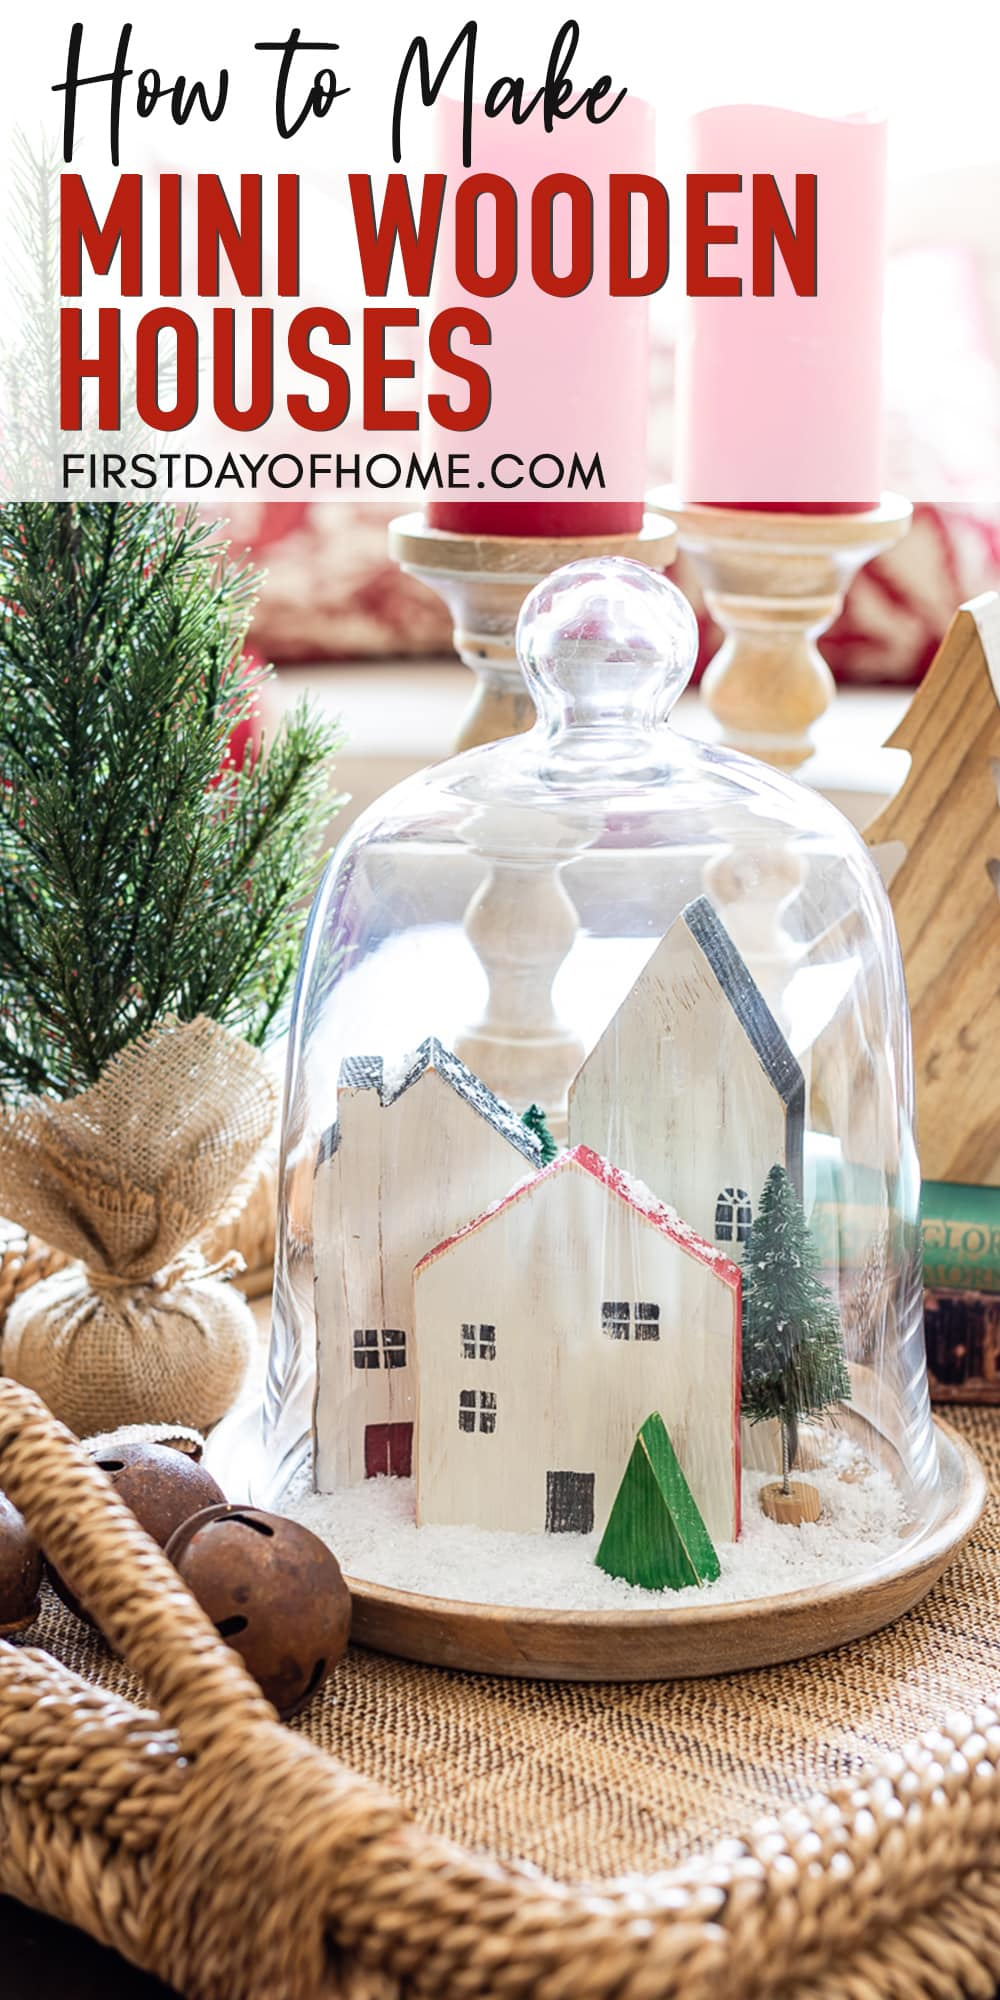 Mini wooden houses in Christmas cloche with fake snow and bottle brush trees